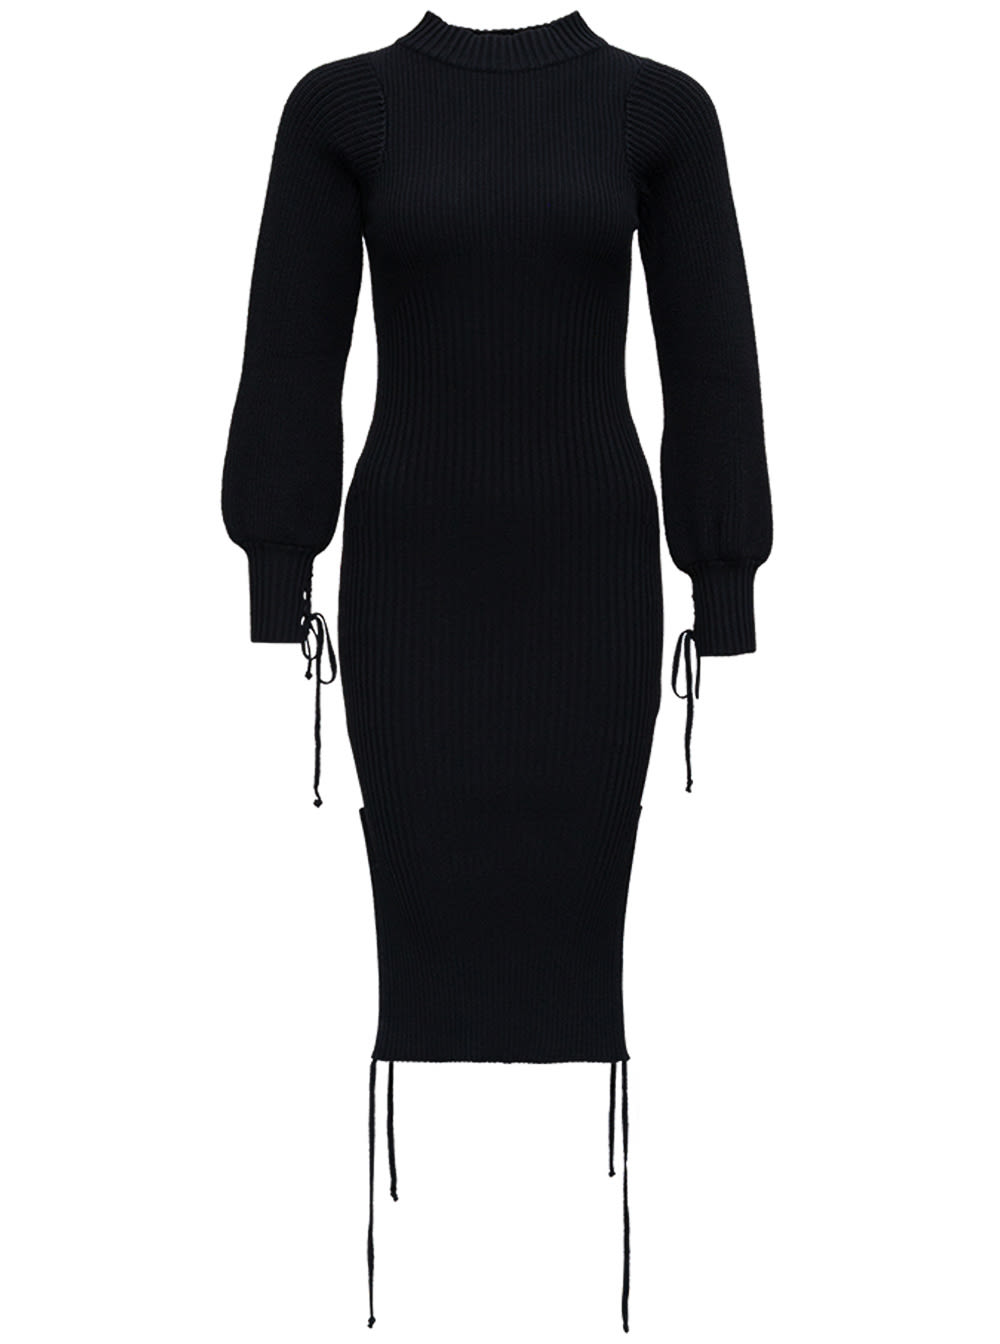 Black Wool Blend Dress With Oversized Sleeves